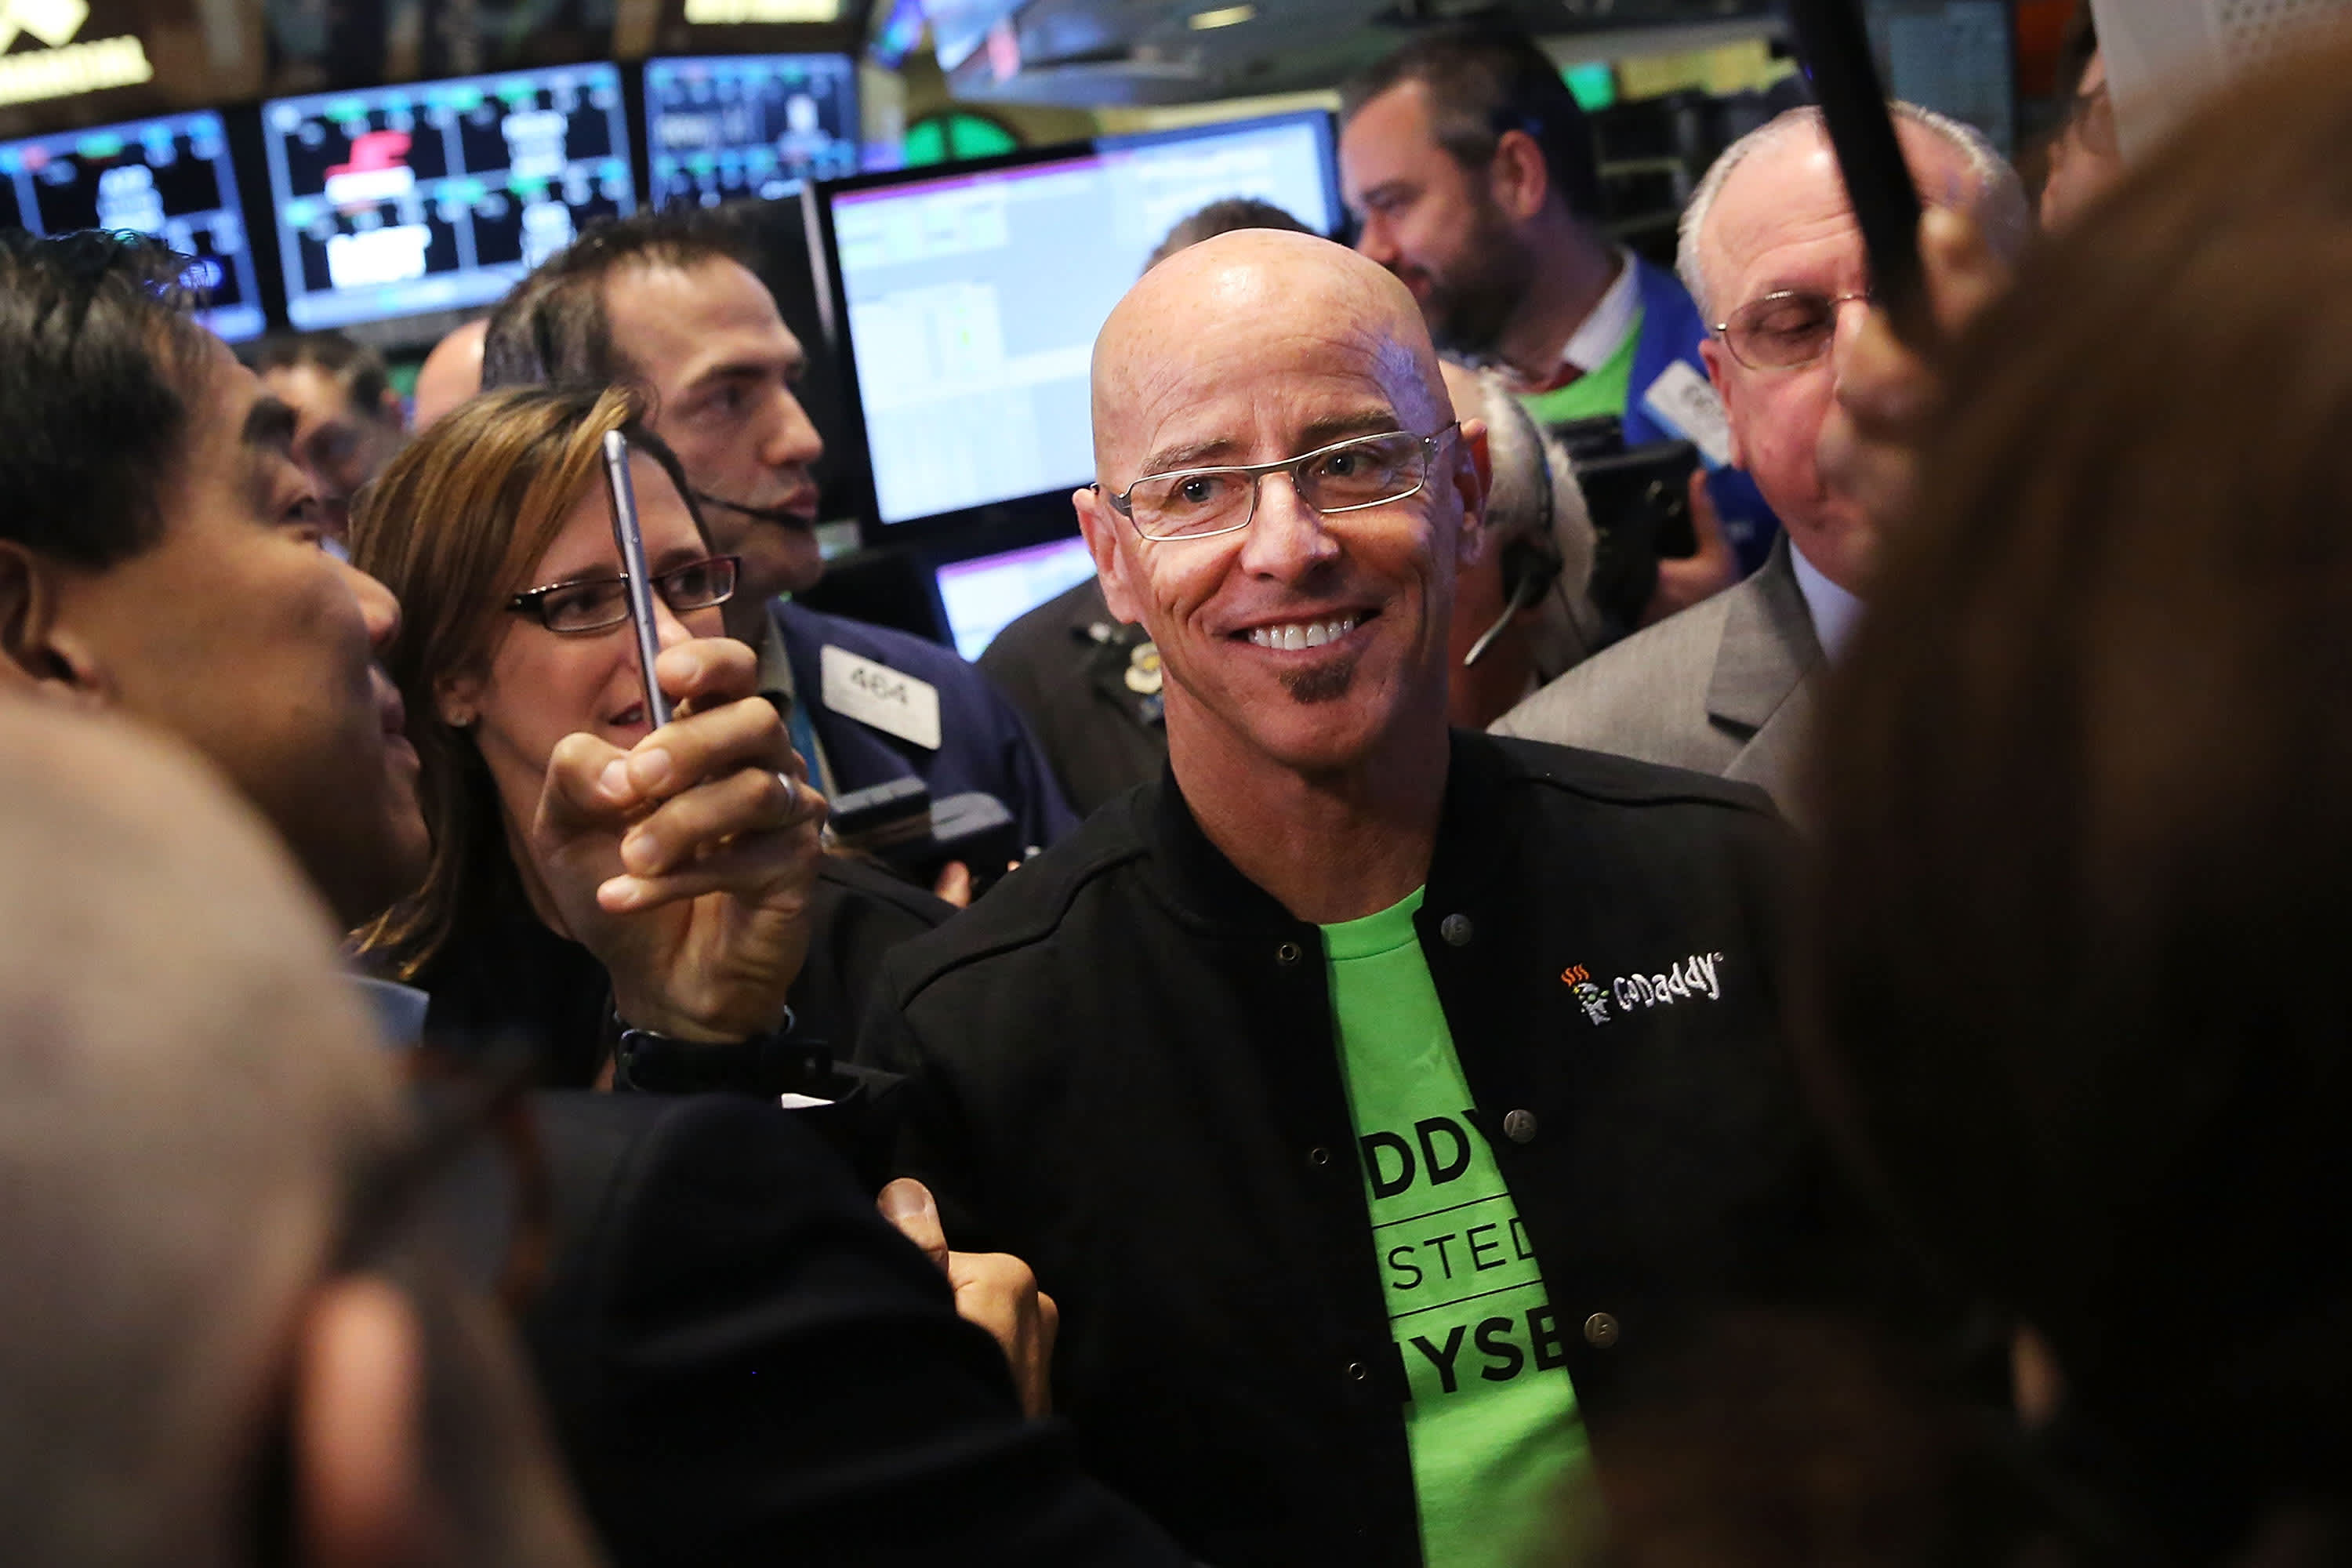 GoDaddy CEO Blake Irving to retire on December 31